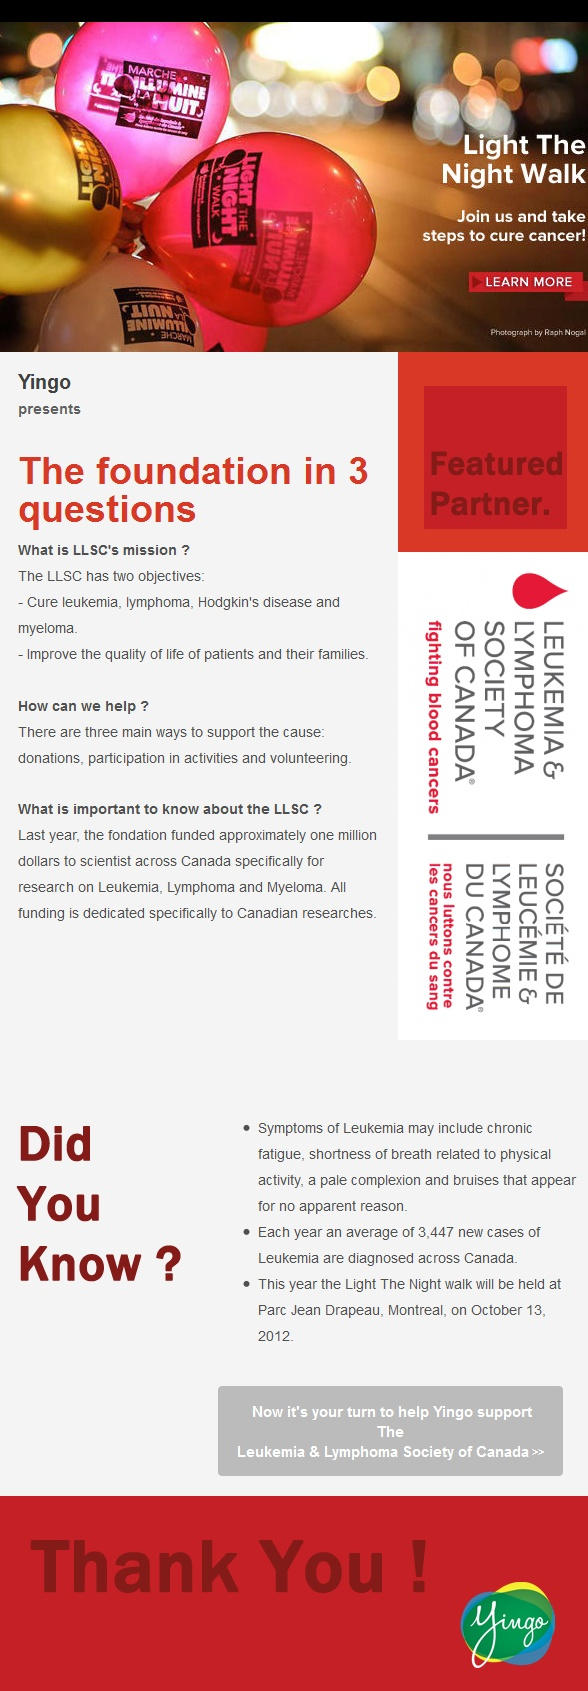 Find out more about the Leukemia & Lymphoma society of Canada, Yingo.ca charity partner for the month of October !